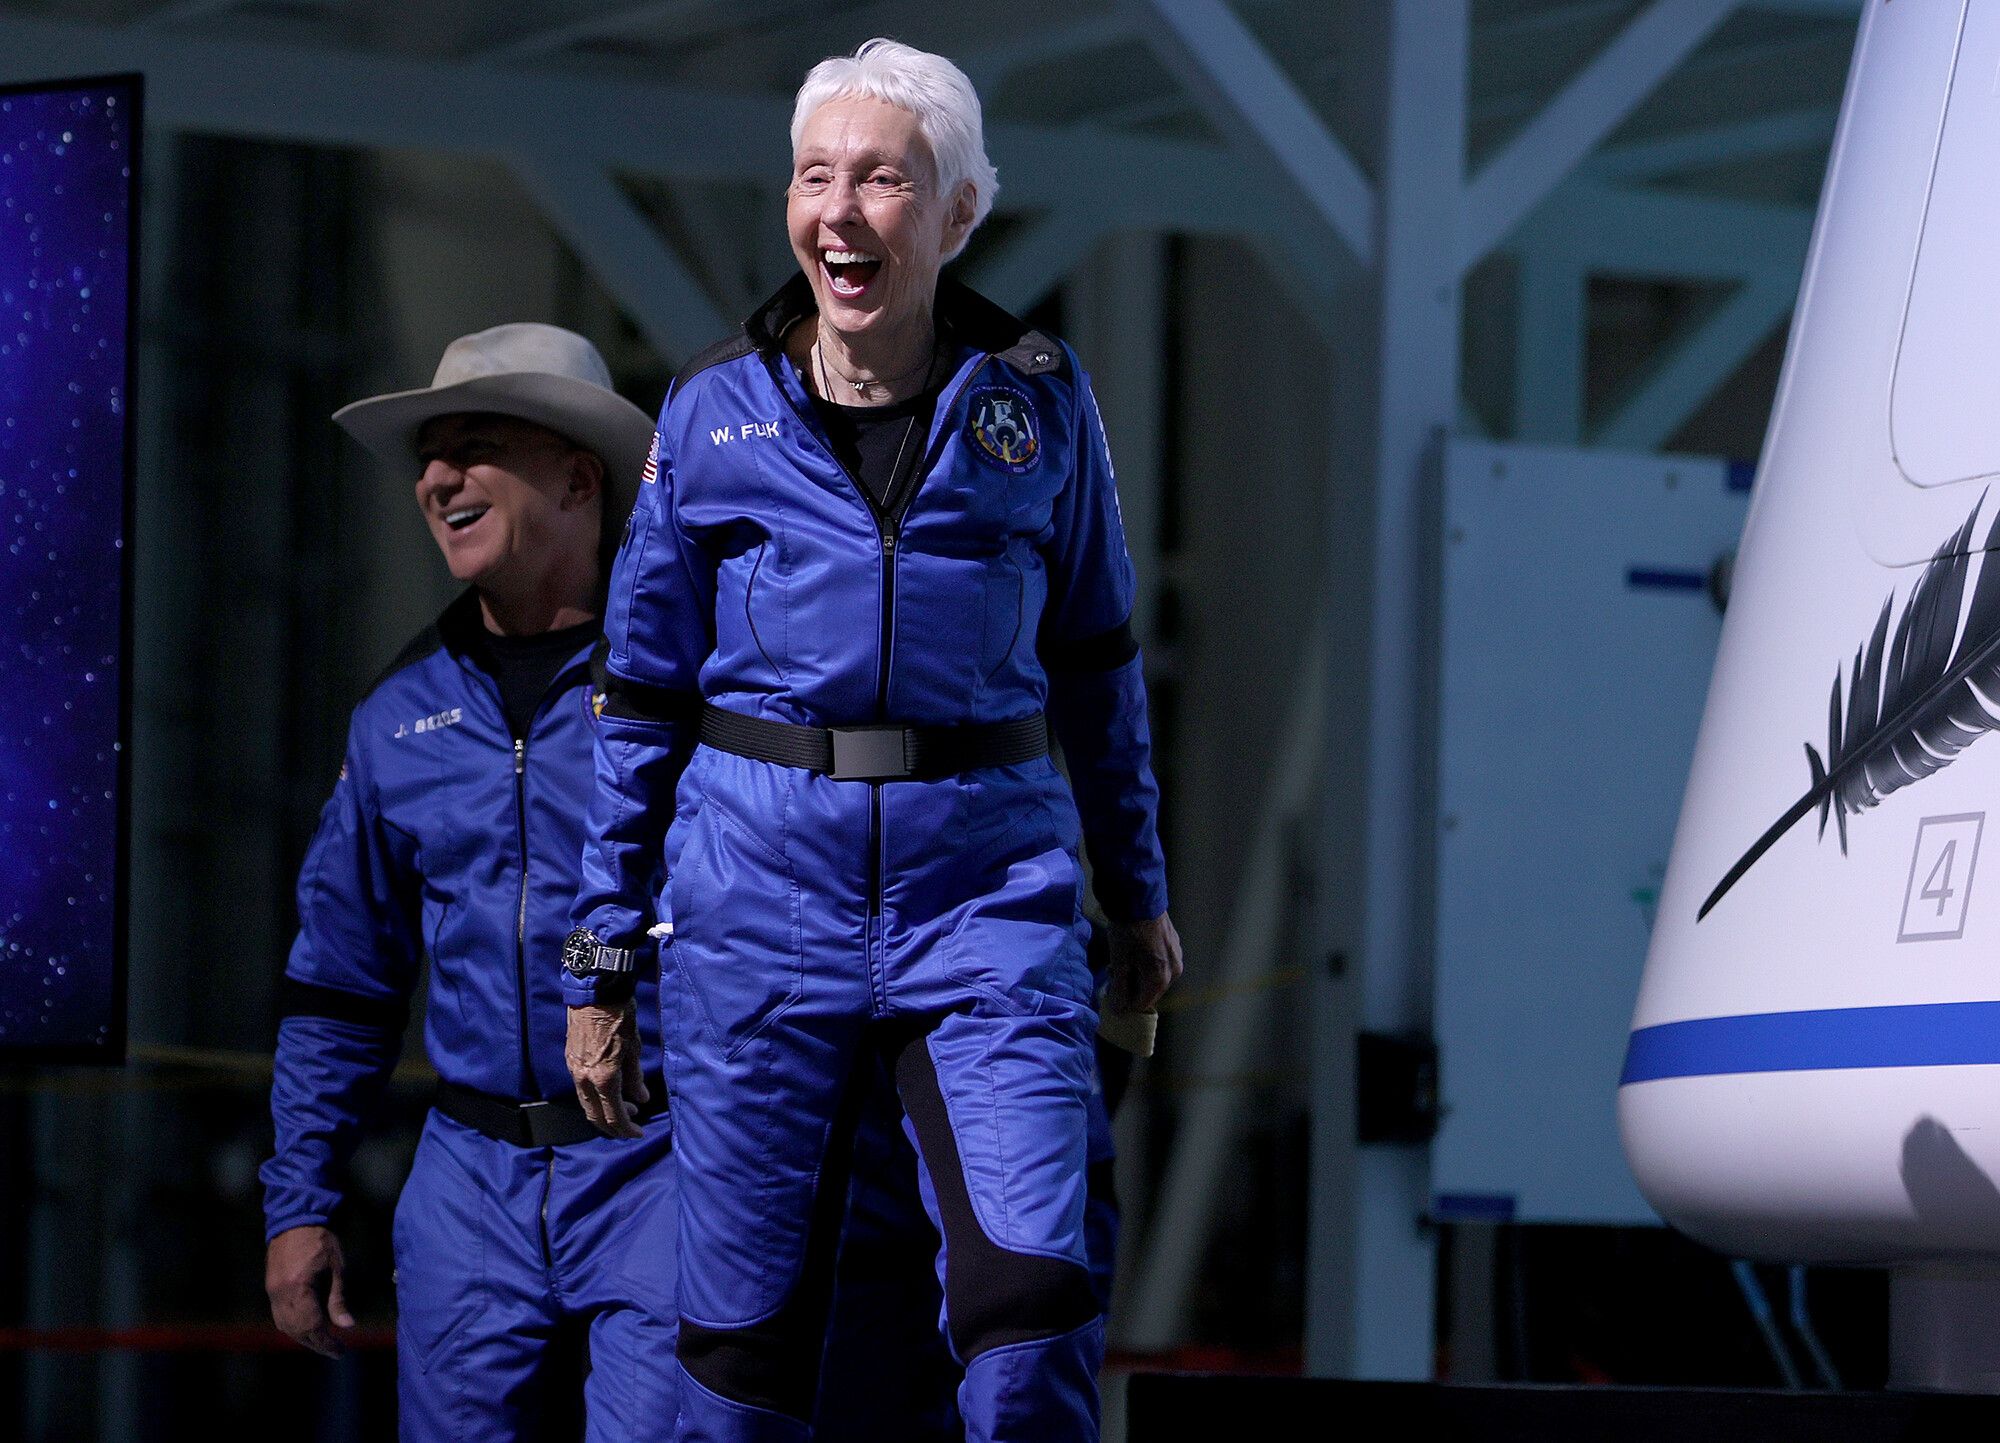 Meet Wally Funk, the 82-year-old pilot who just went to space with Jeff Bezos